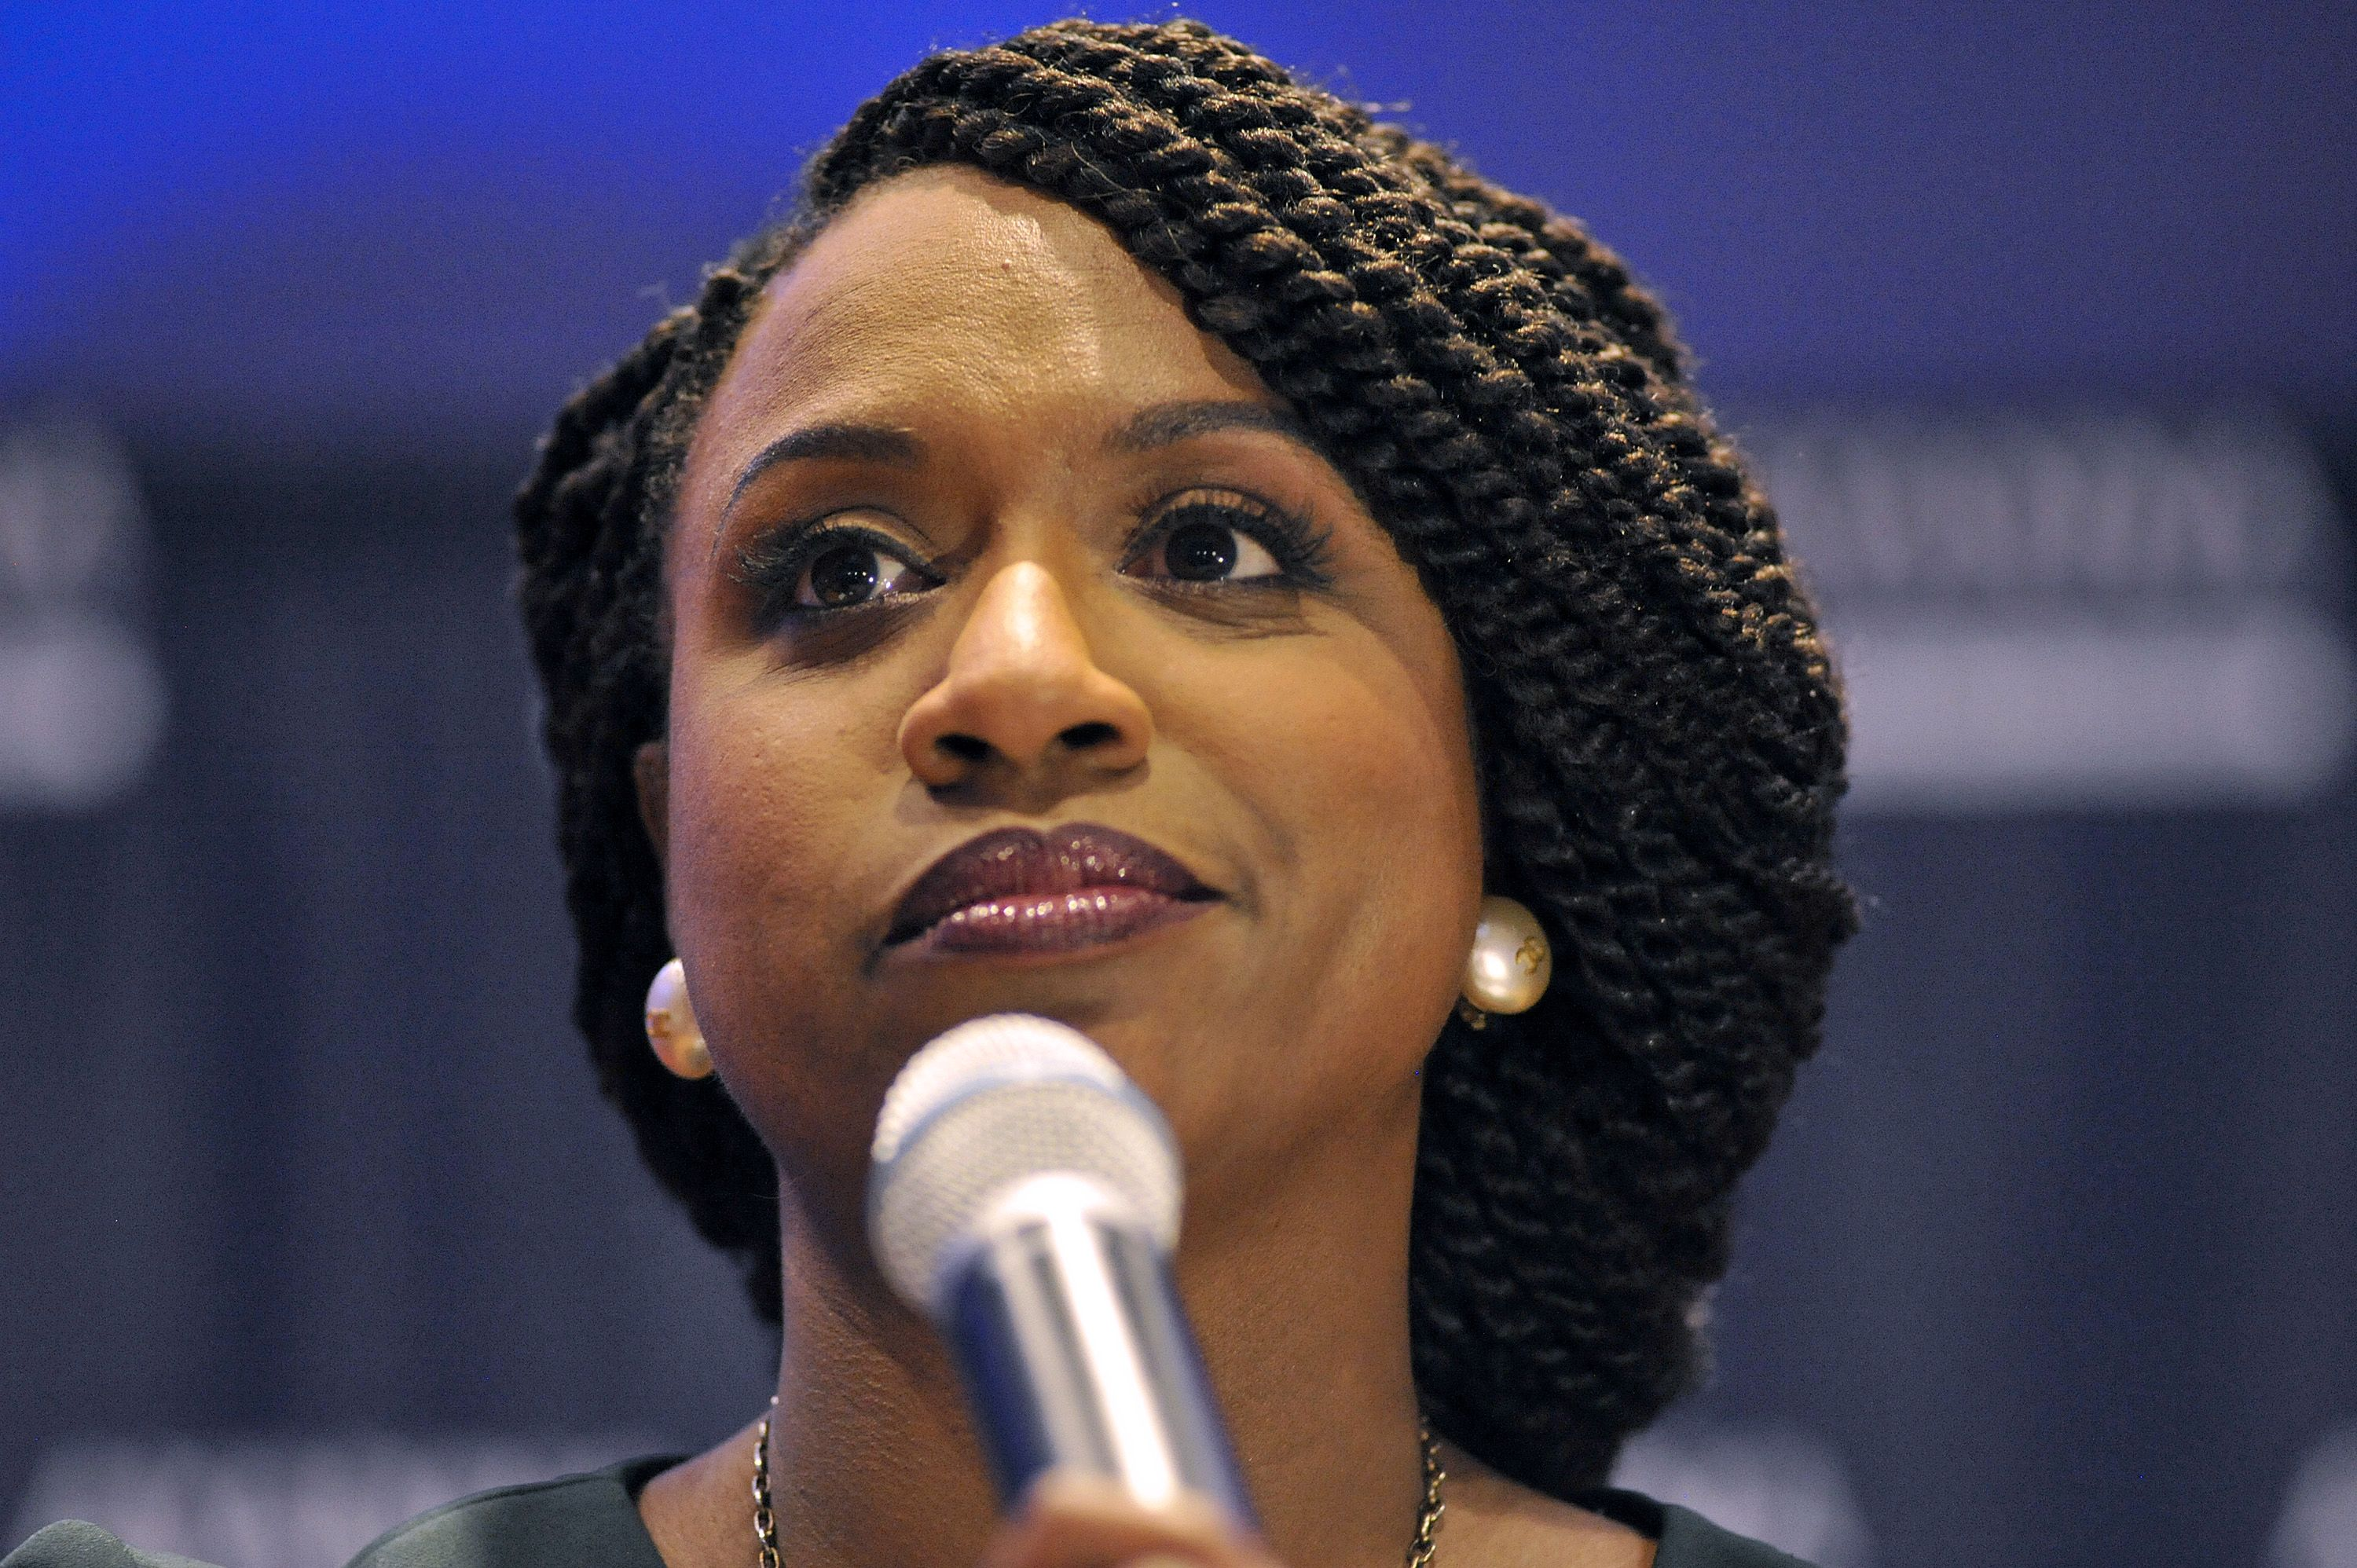 Ayanna Pressley, Boston City Council member and Democratic candidate for congress, delivers her victory speech on September 4, 2018.